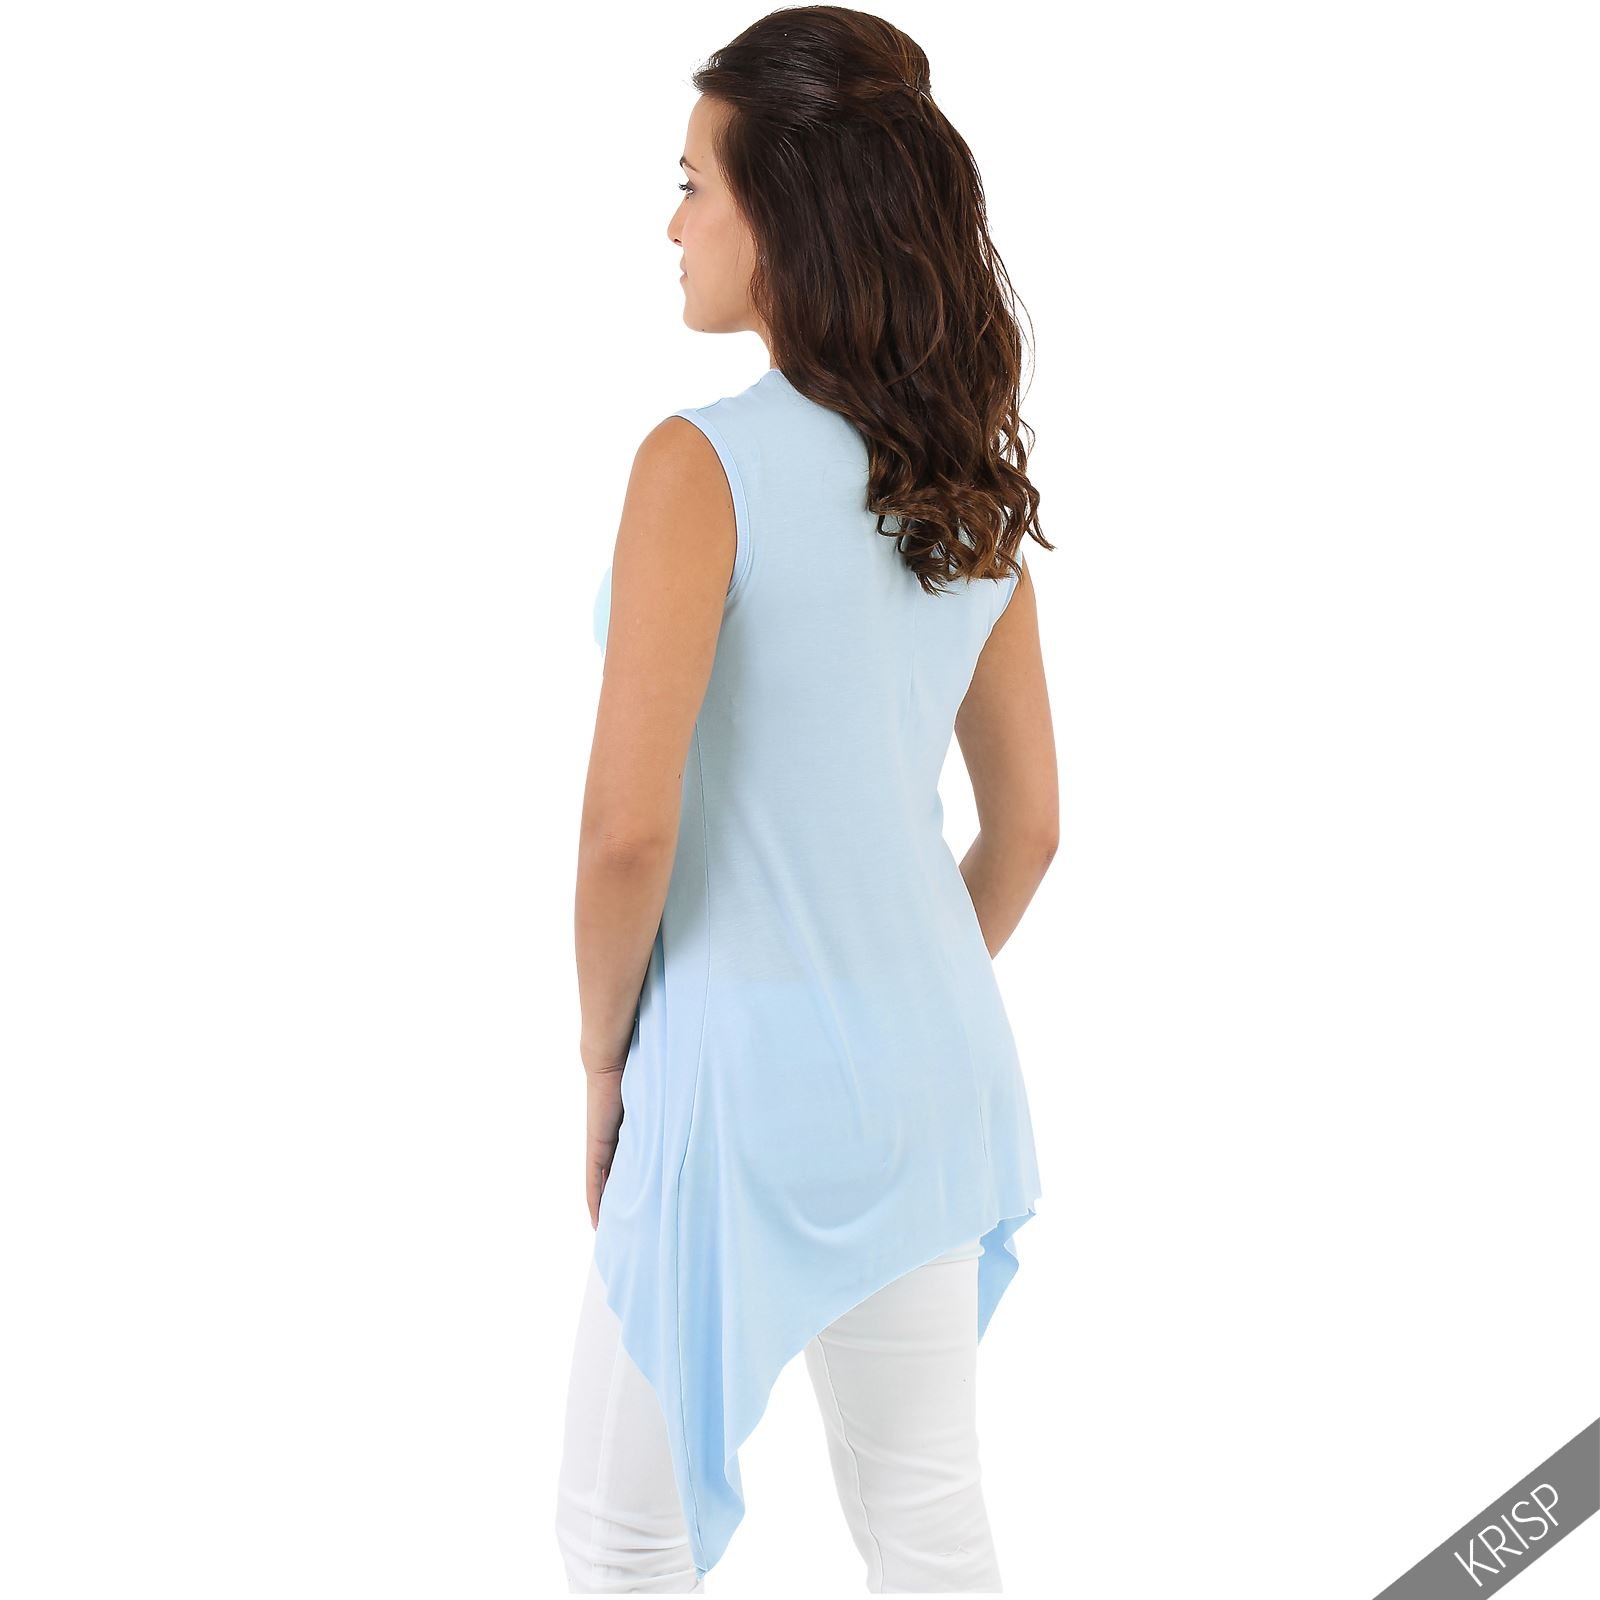 Women-Long-Top-Sleeveless-Pleated-Tee-Shirt-Tunic-Jersey-Stretch-Loose-Fit thumbnail 3